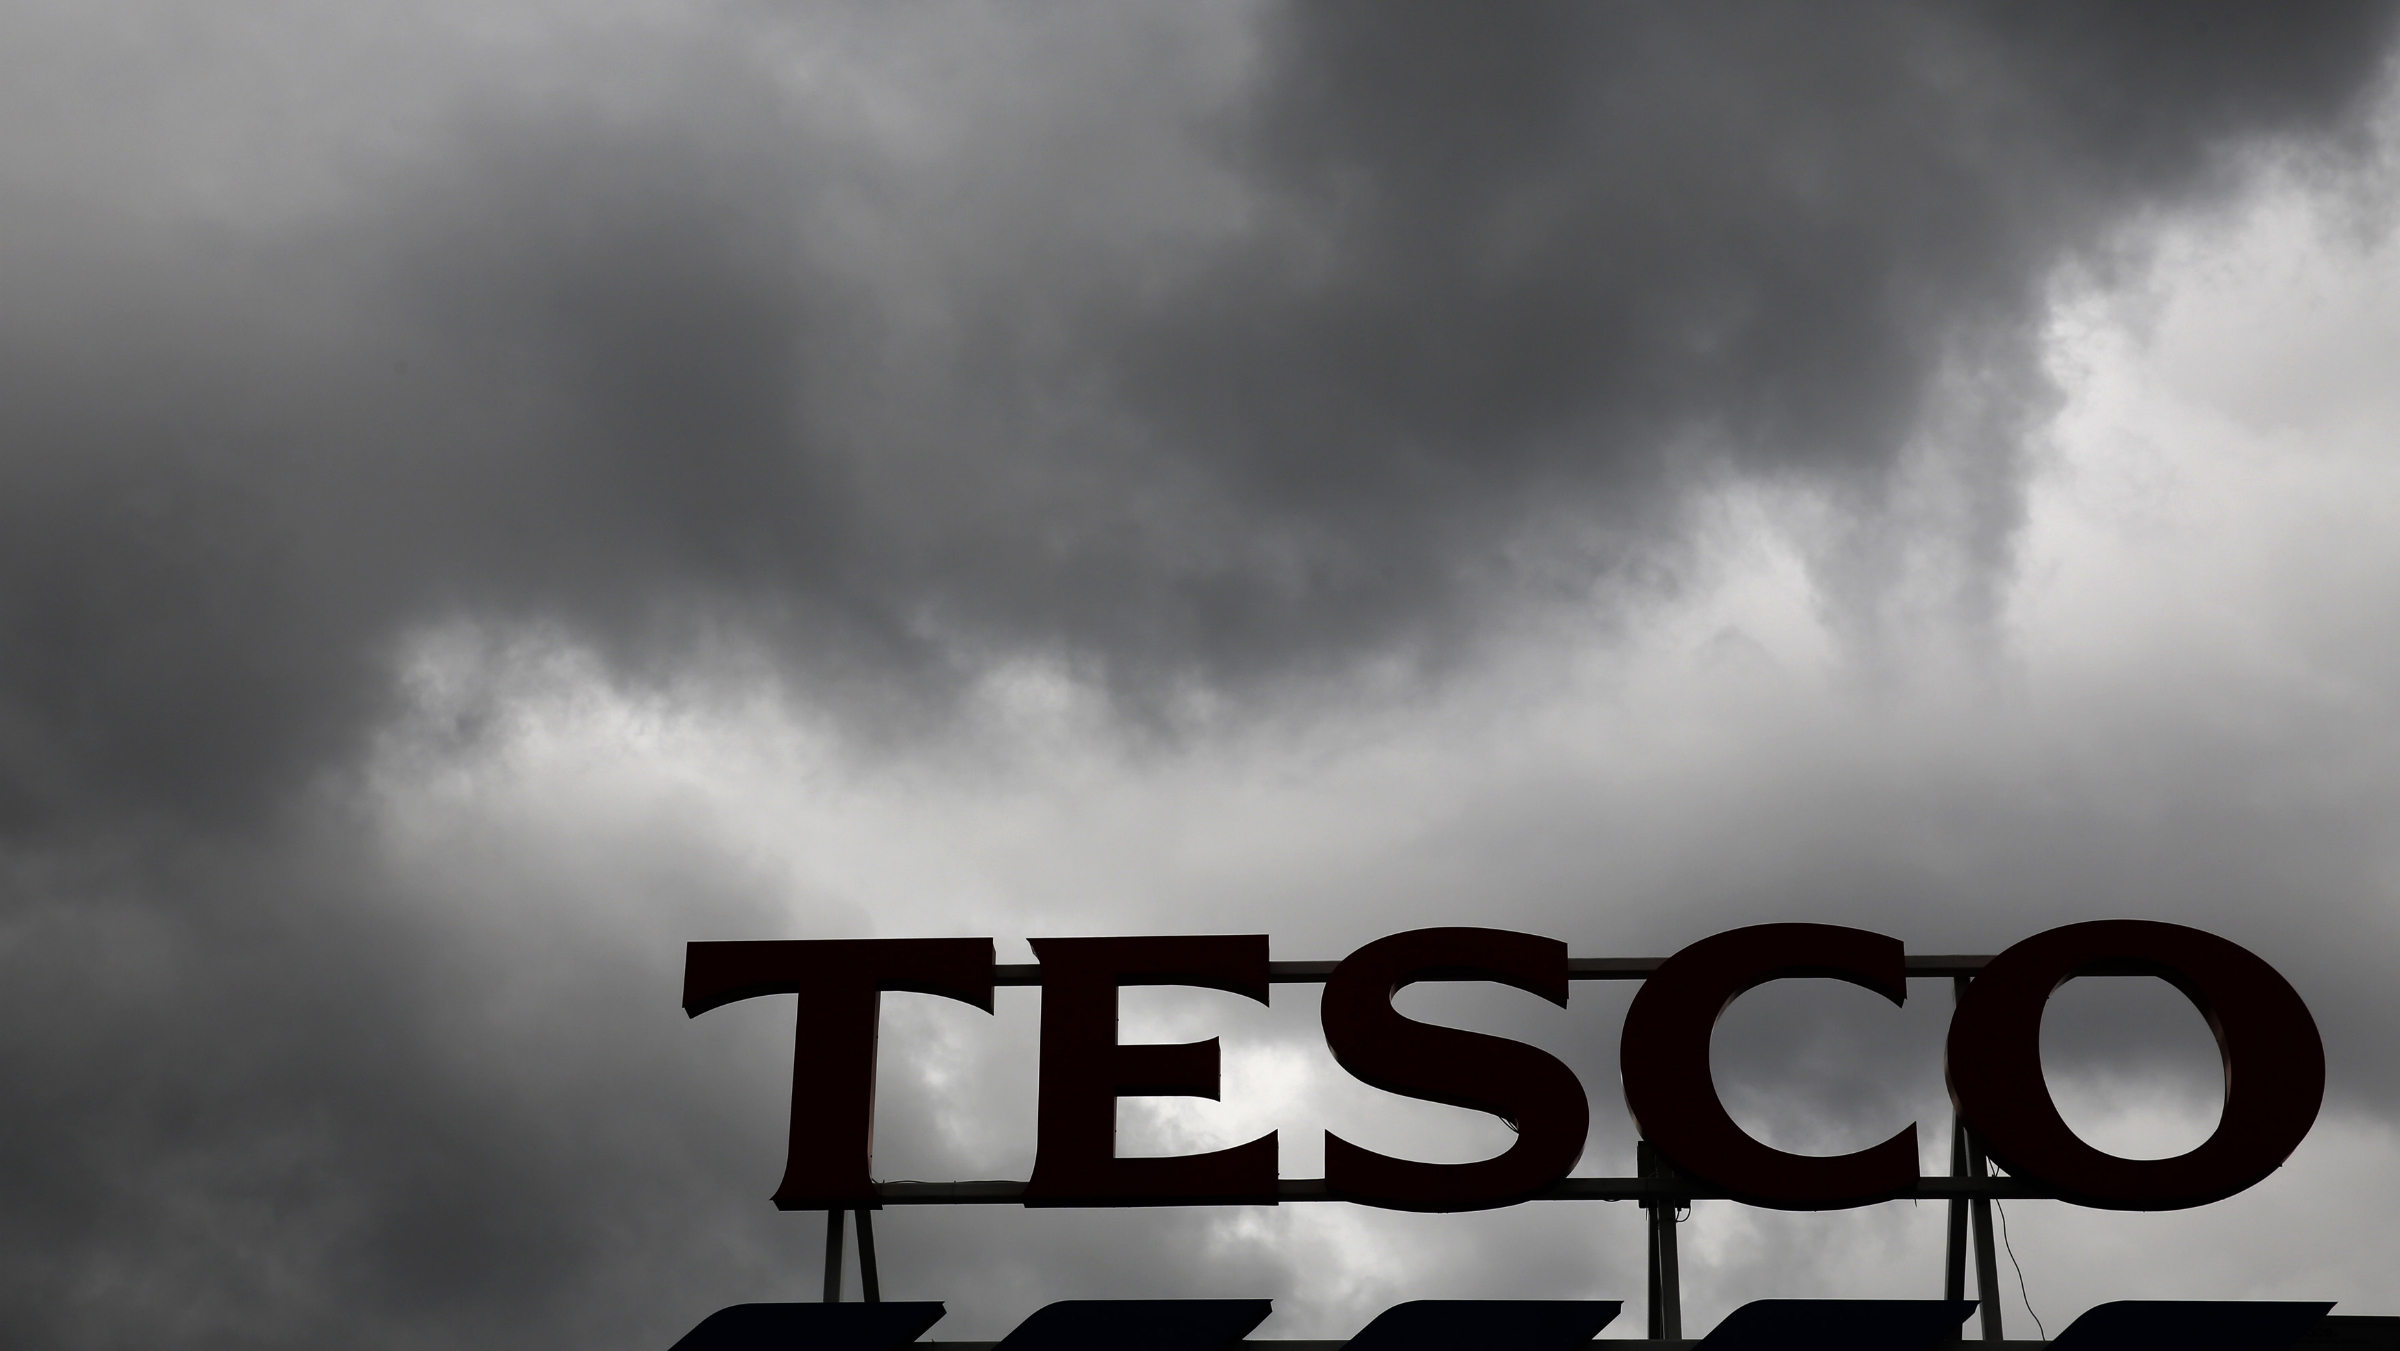 tesco grocery store sign